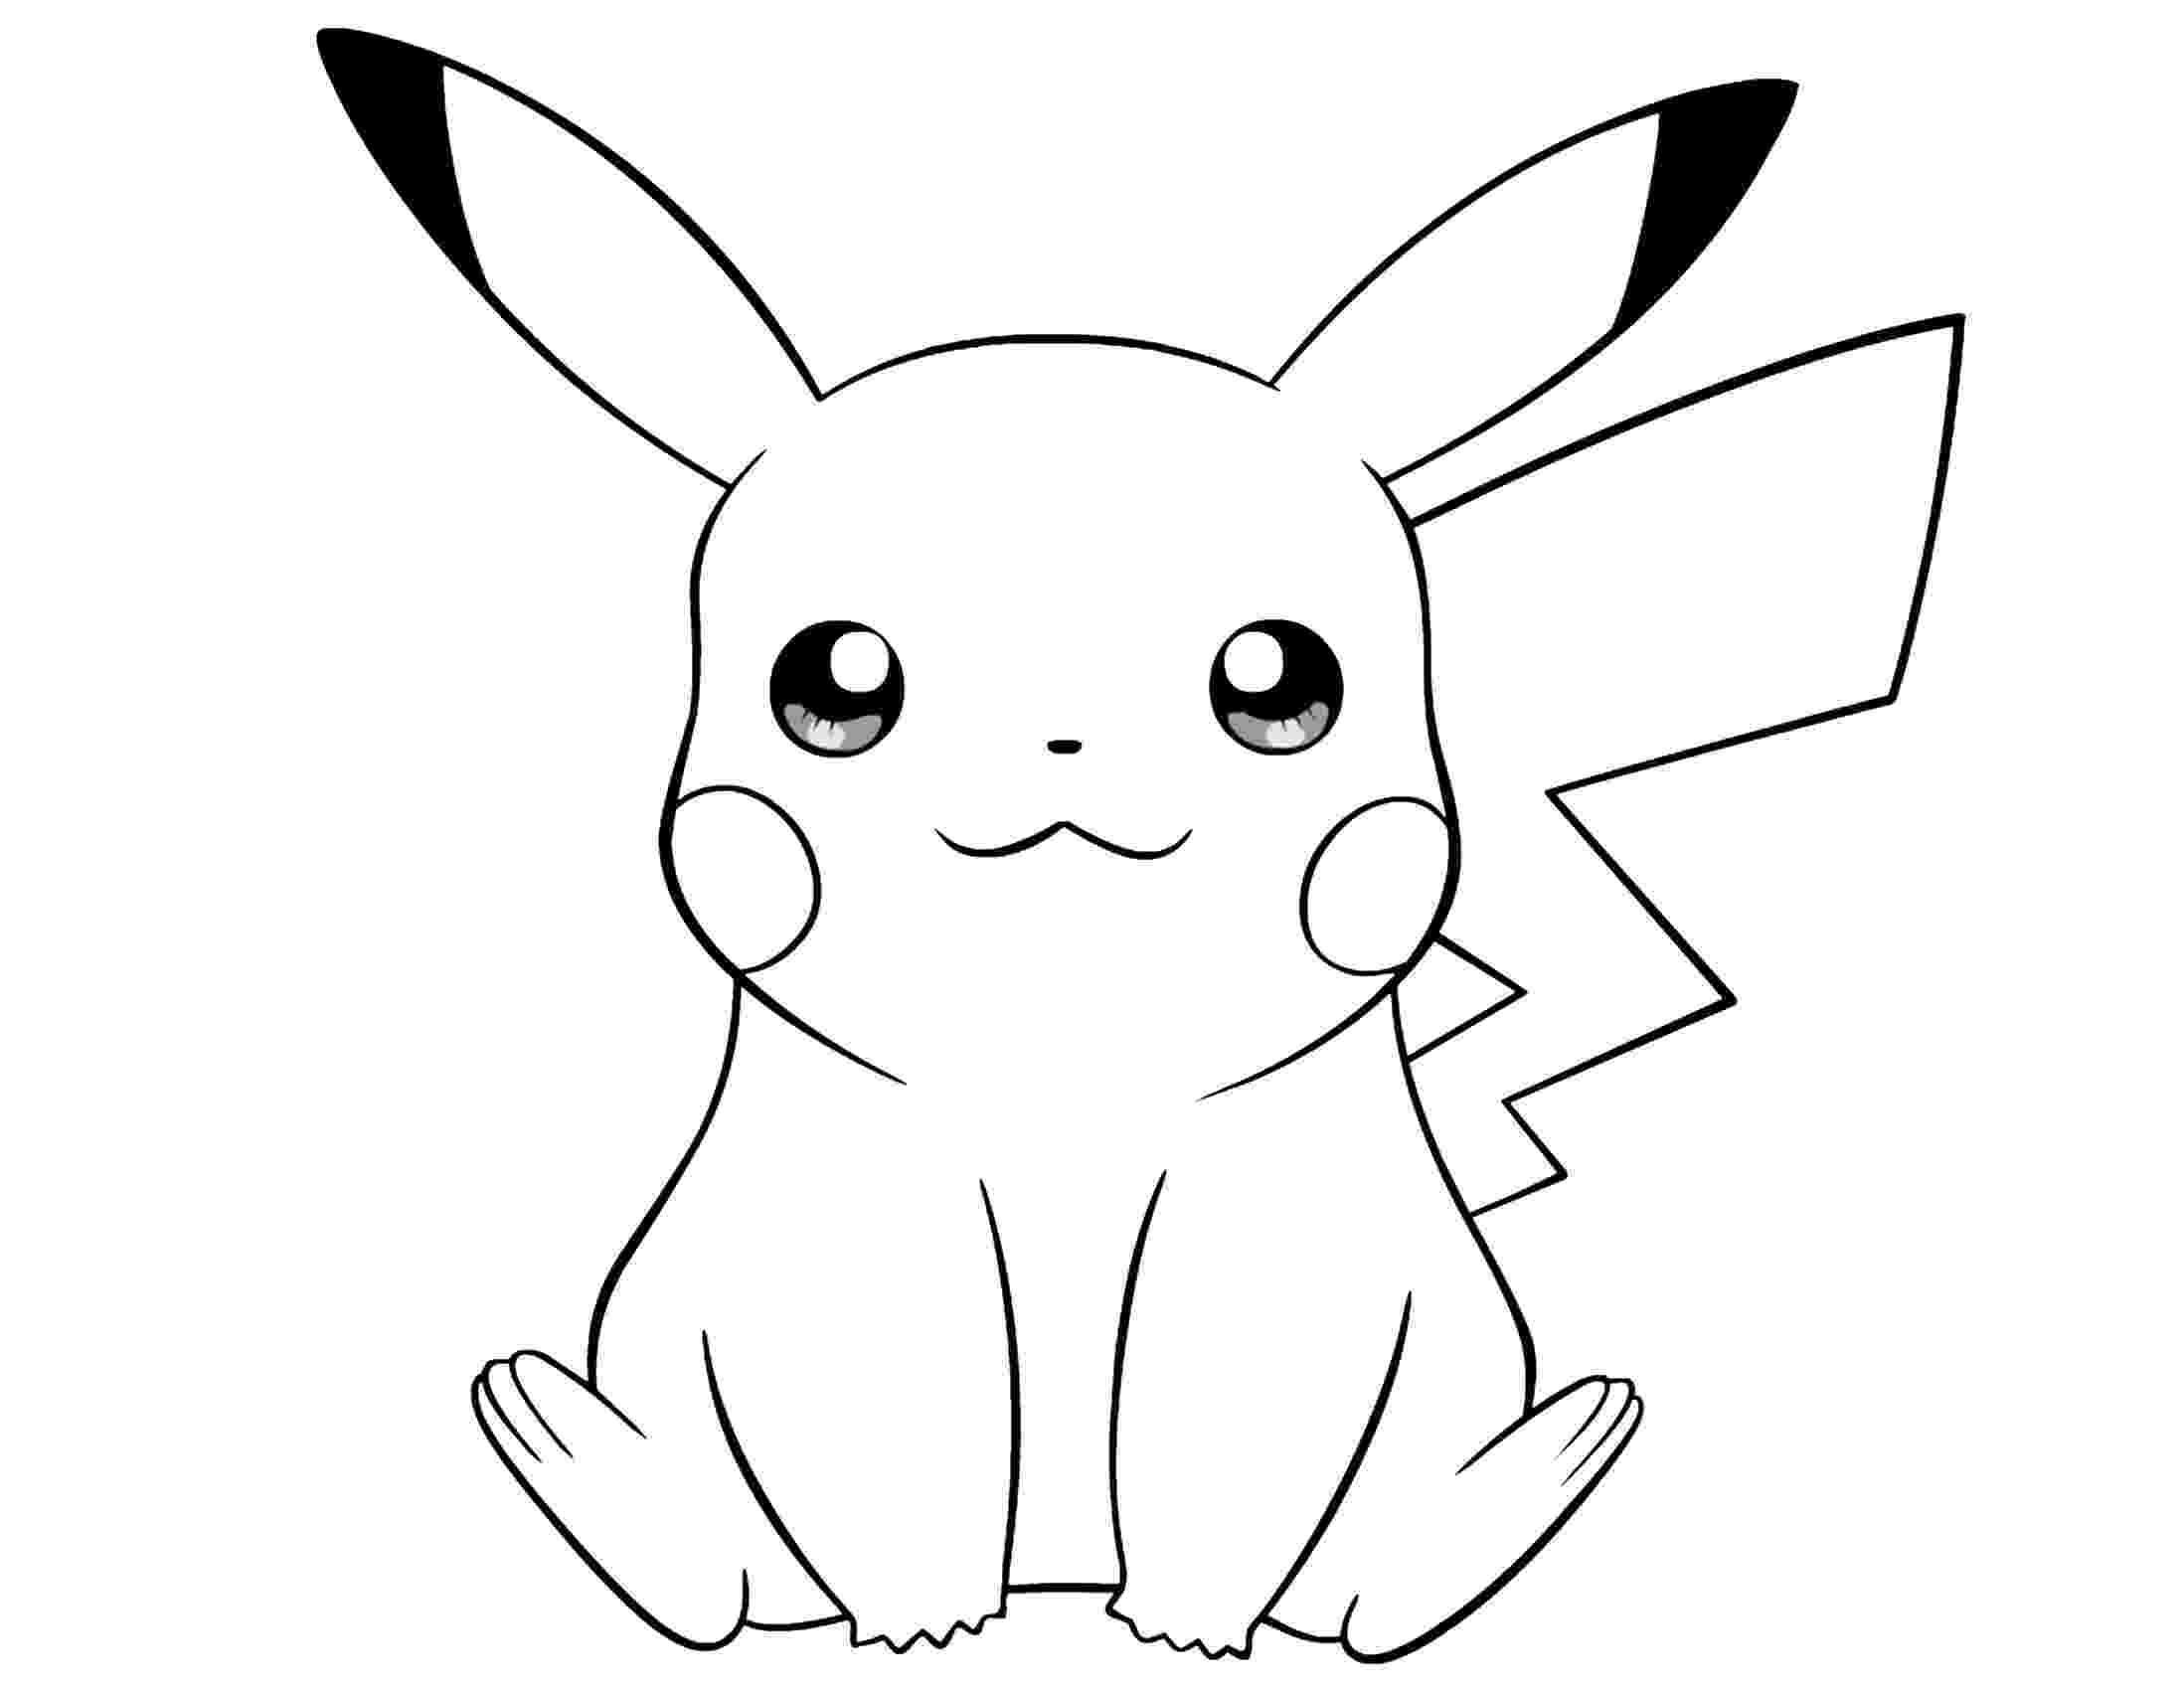 coloring pages pikachu pokemon coloring pages pikachu part 6 free resource pikachu pages coloring